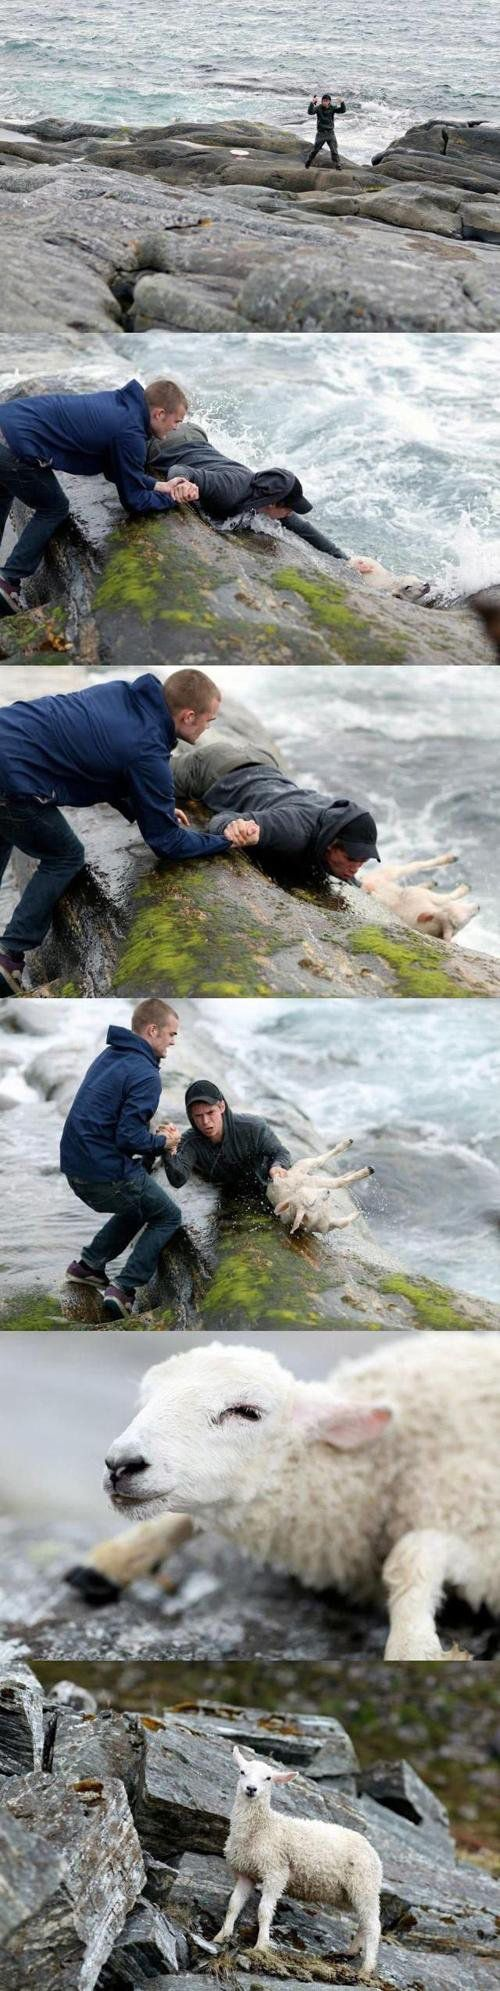 faith in humanity:::restored::::